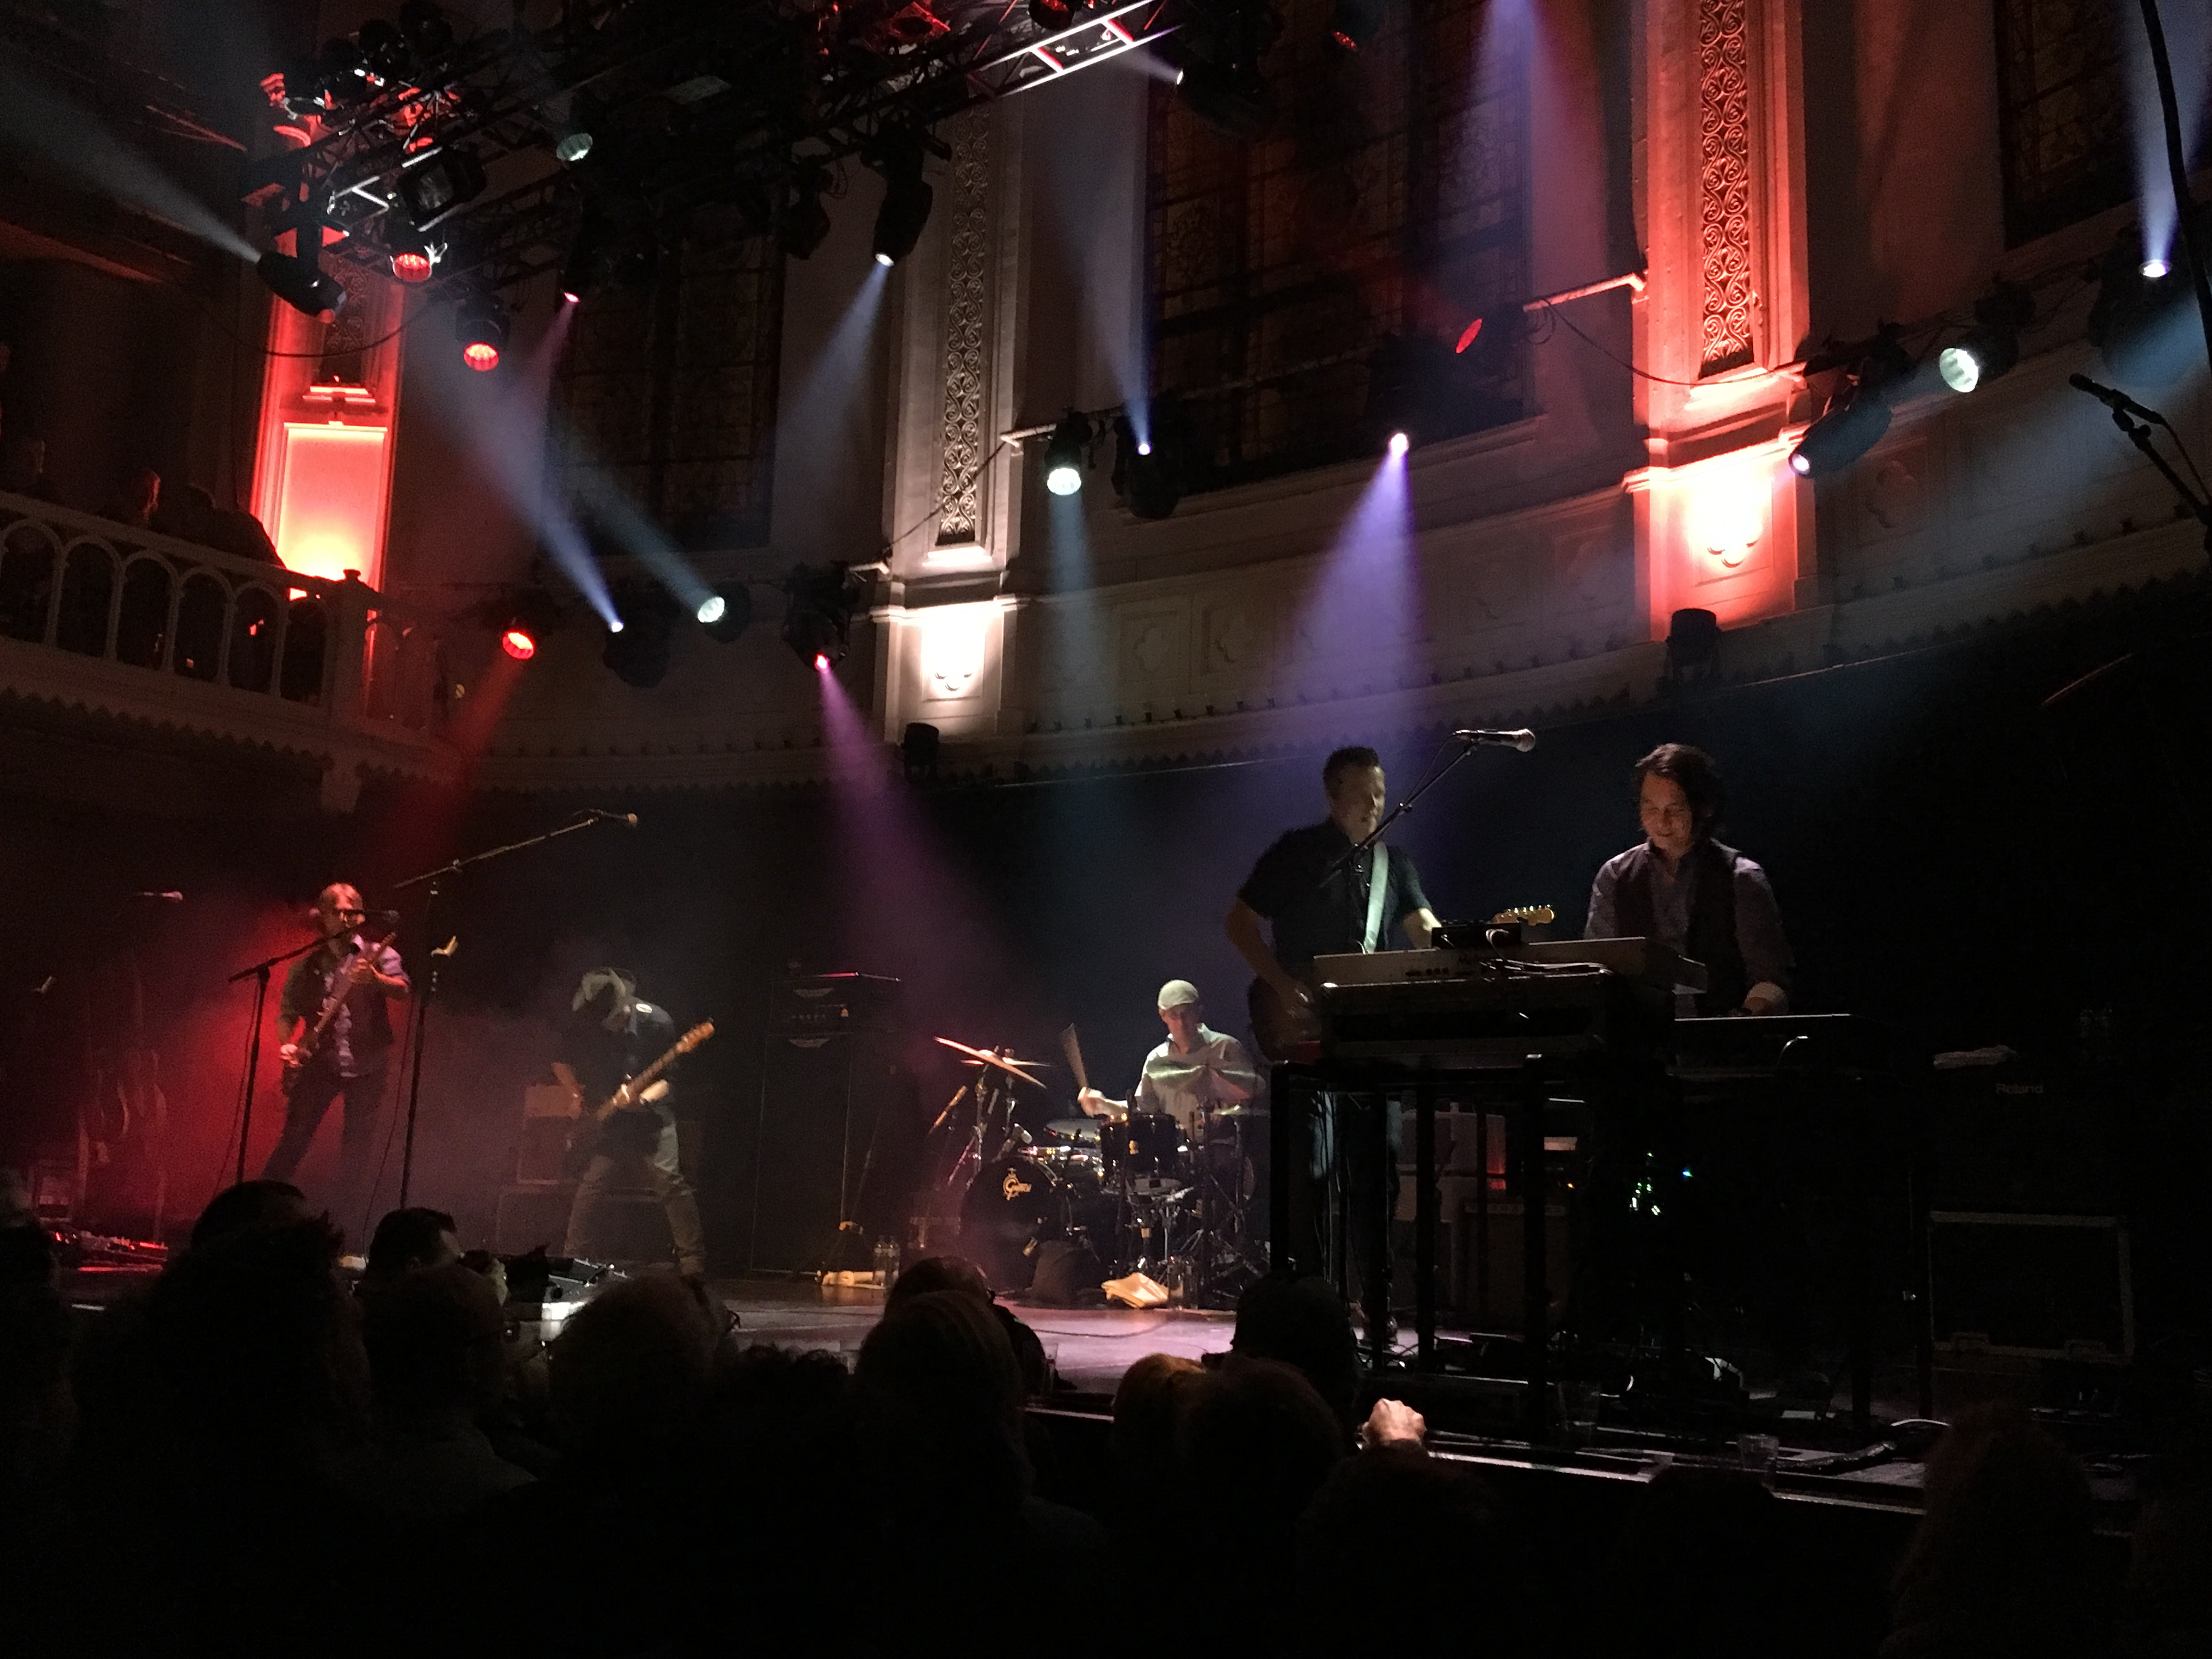 Concertreview: Jason Isbell: 'Nice meeting you and enjoy the night'